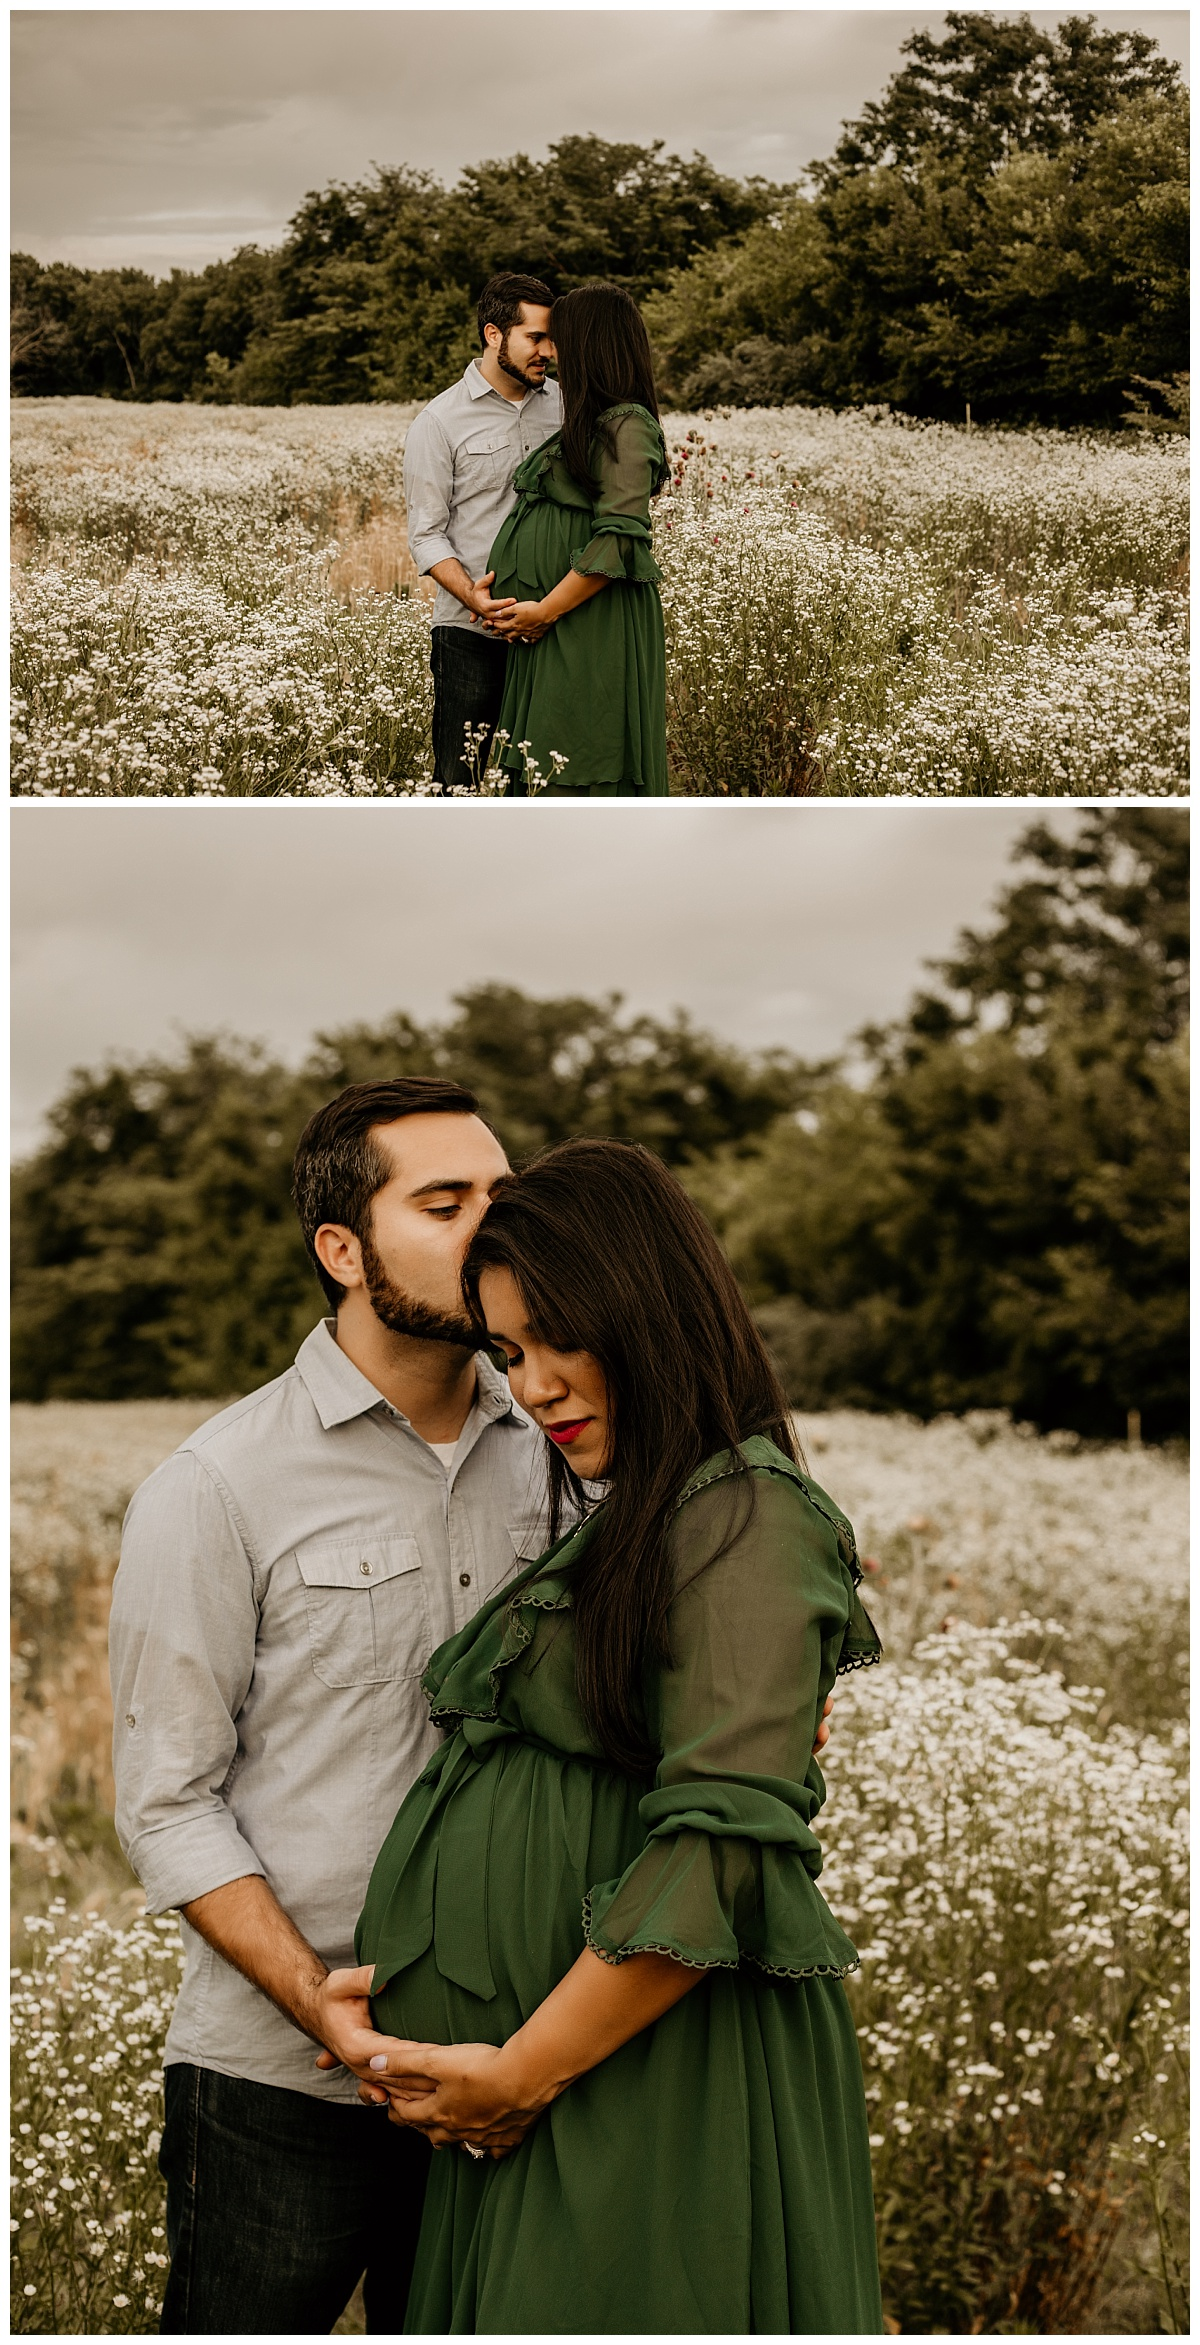 Boho Maternity | Kansas City Maternity Photography | Fillyboo | Summer Maternity Photos | Wildflower Photos | Fillyboo Maternity